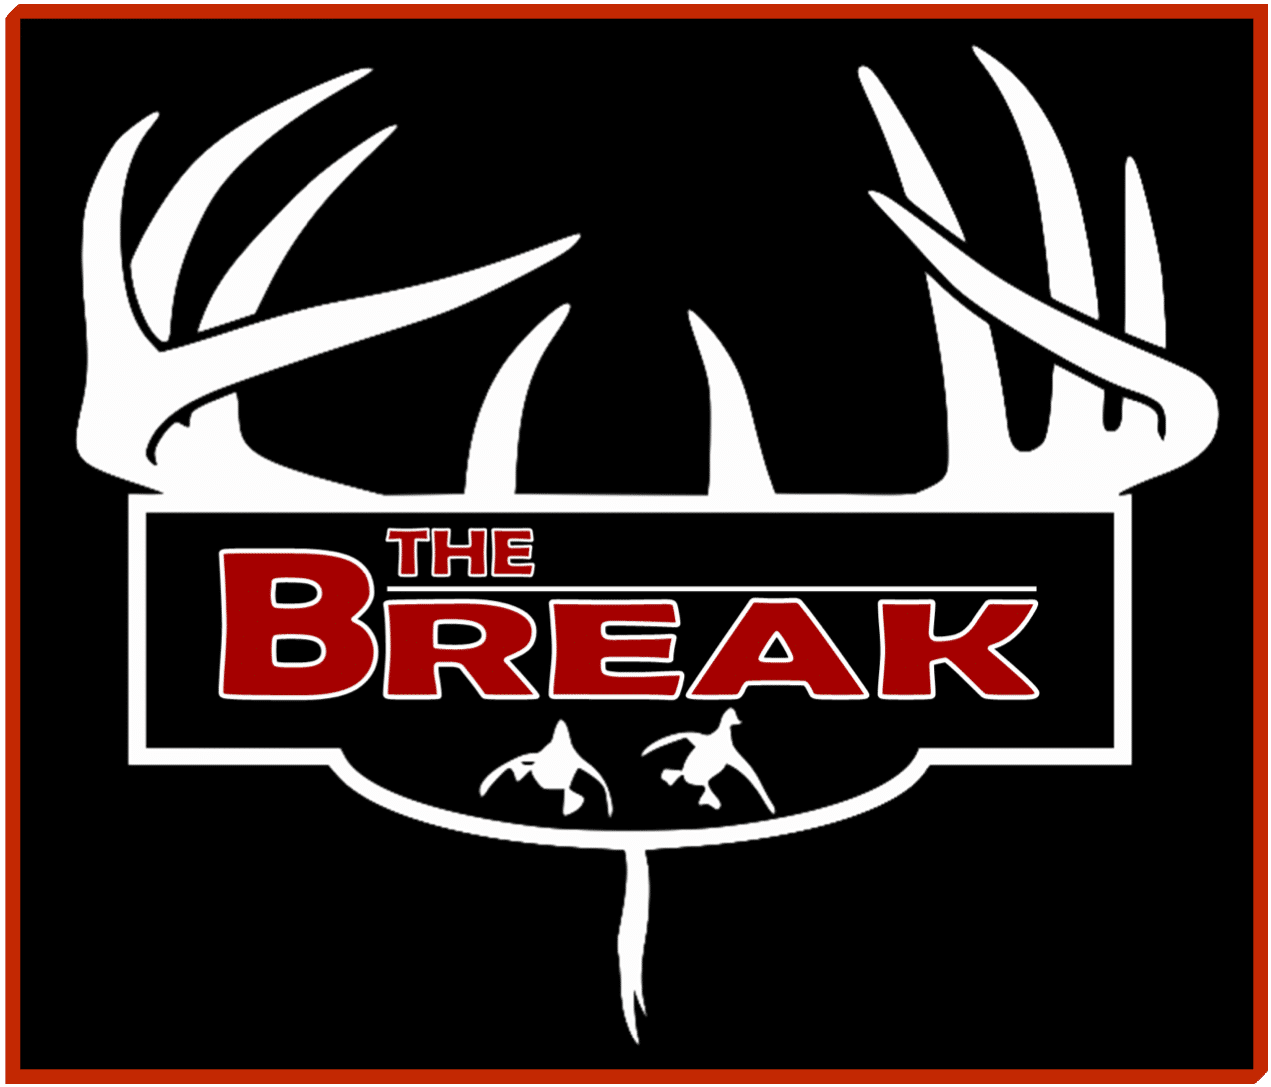 https://banksoutdoors.com/wp-content/uploads/2017/08/The-Break-framed-logo-big.png